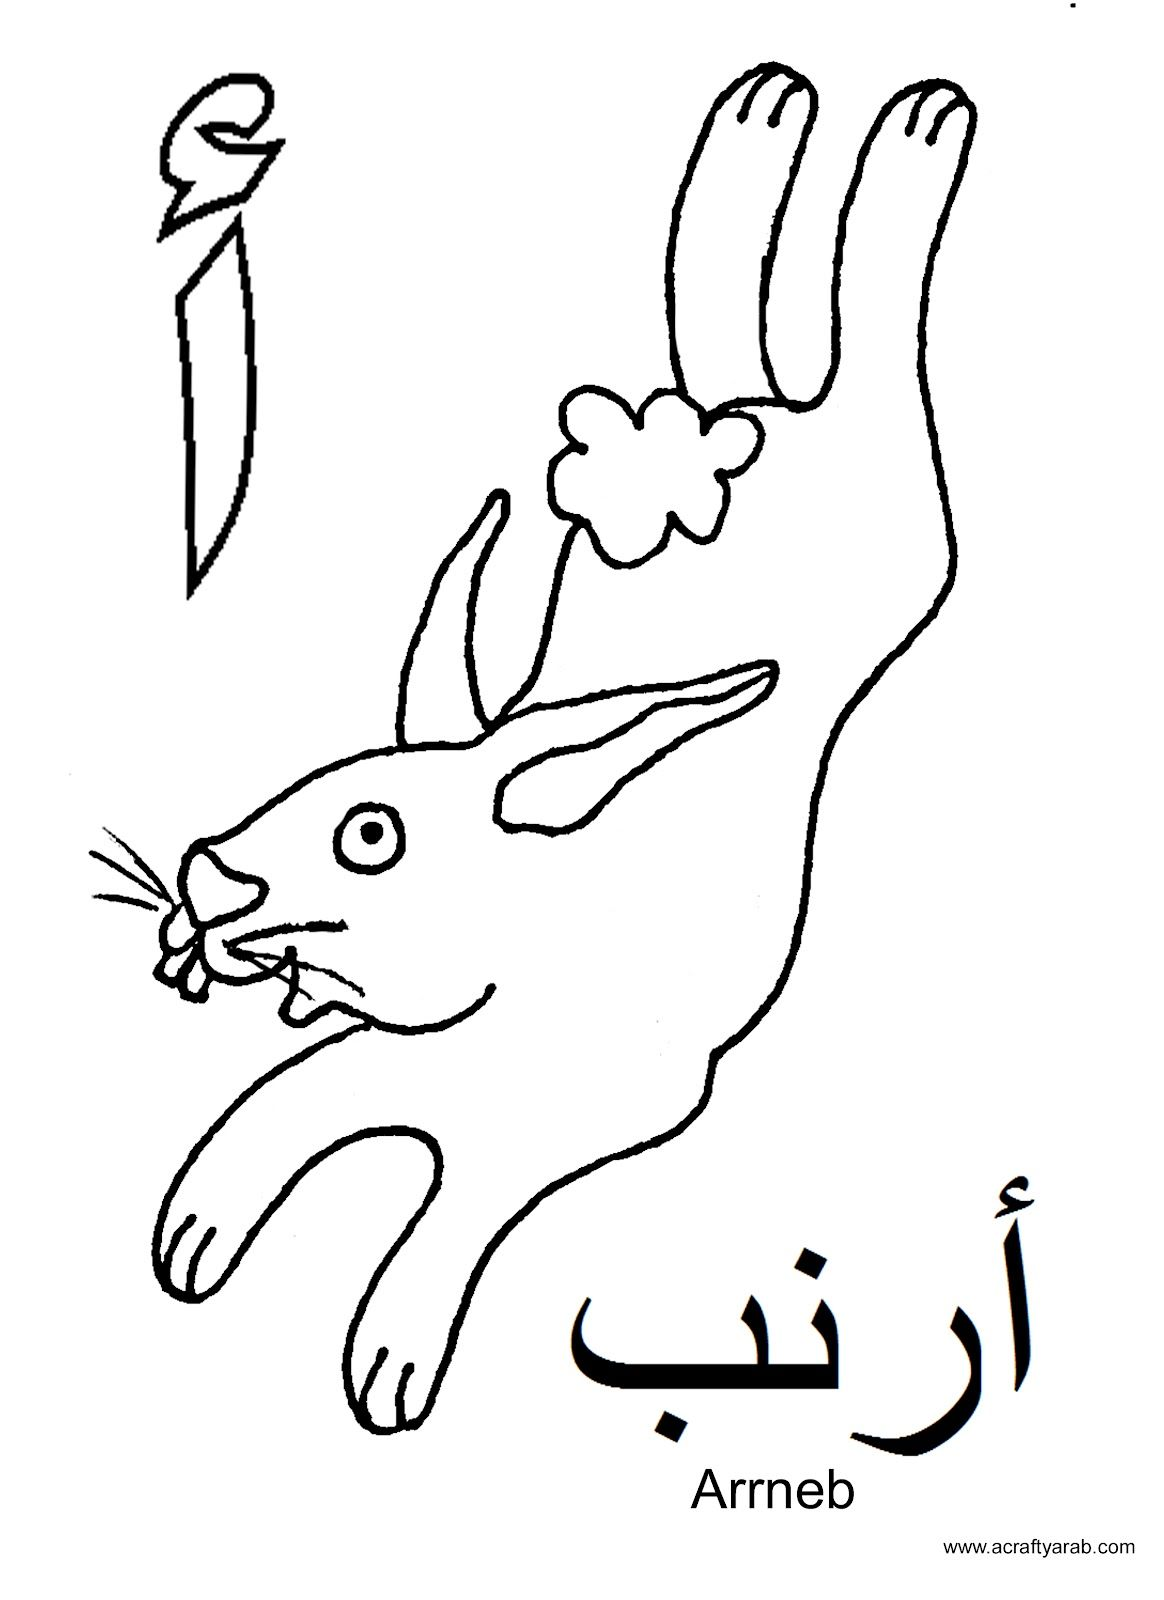 Alif Is For Arrnab Arabic Colouring Pages Fun To Do For